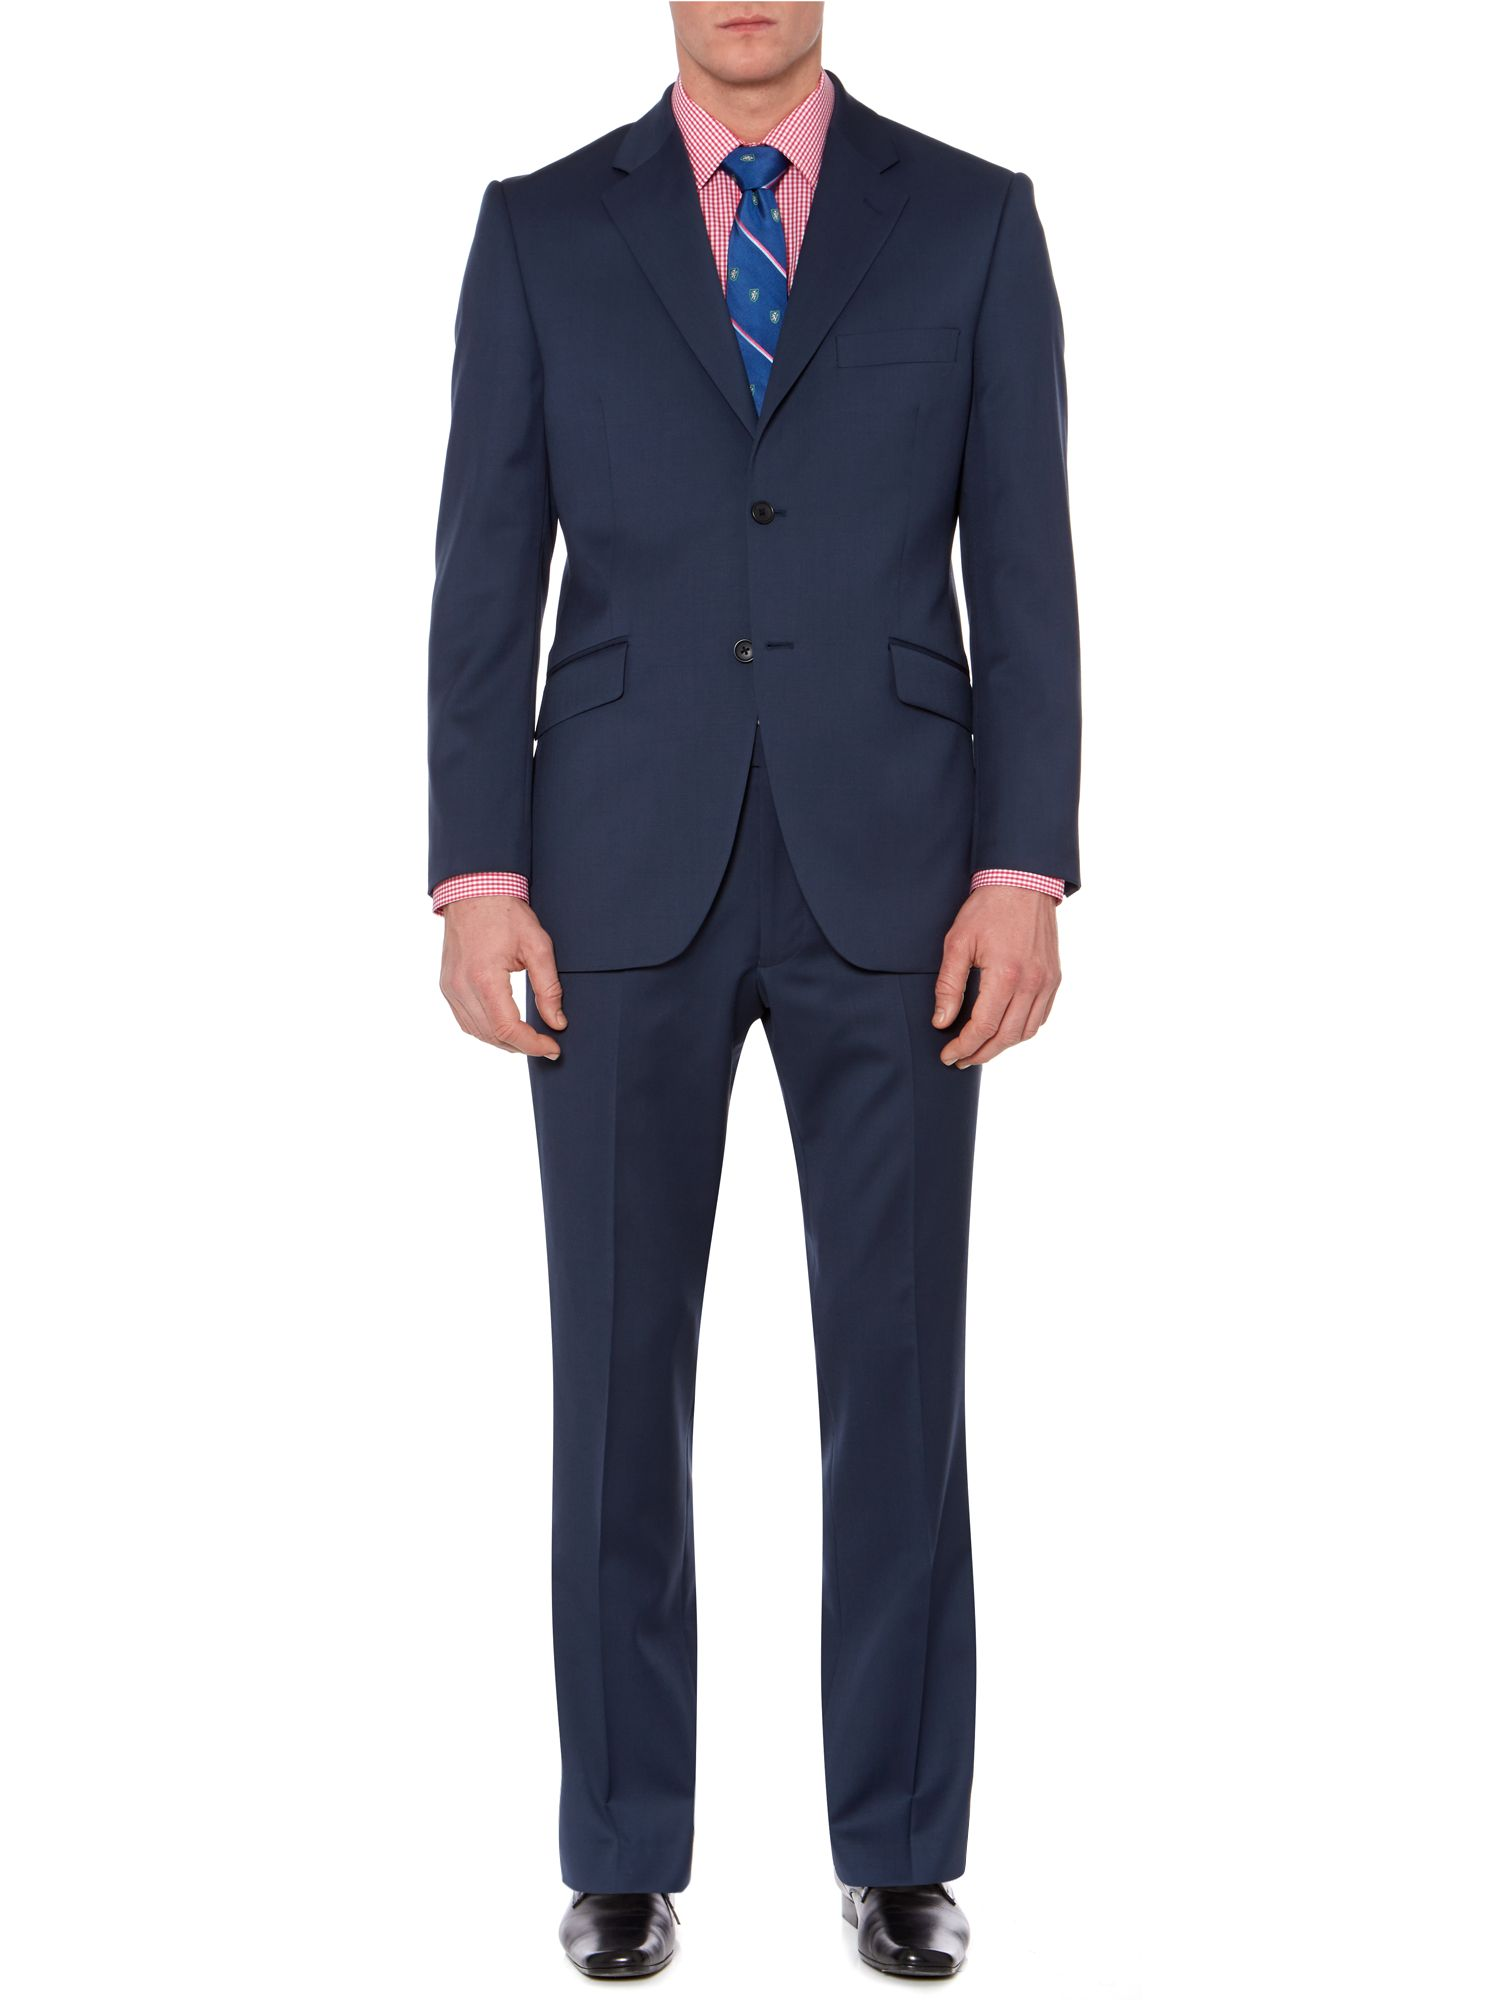 Bridgeman Notch Twill Suit Jacket